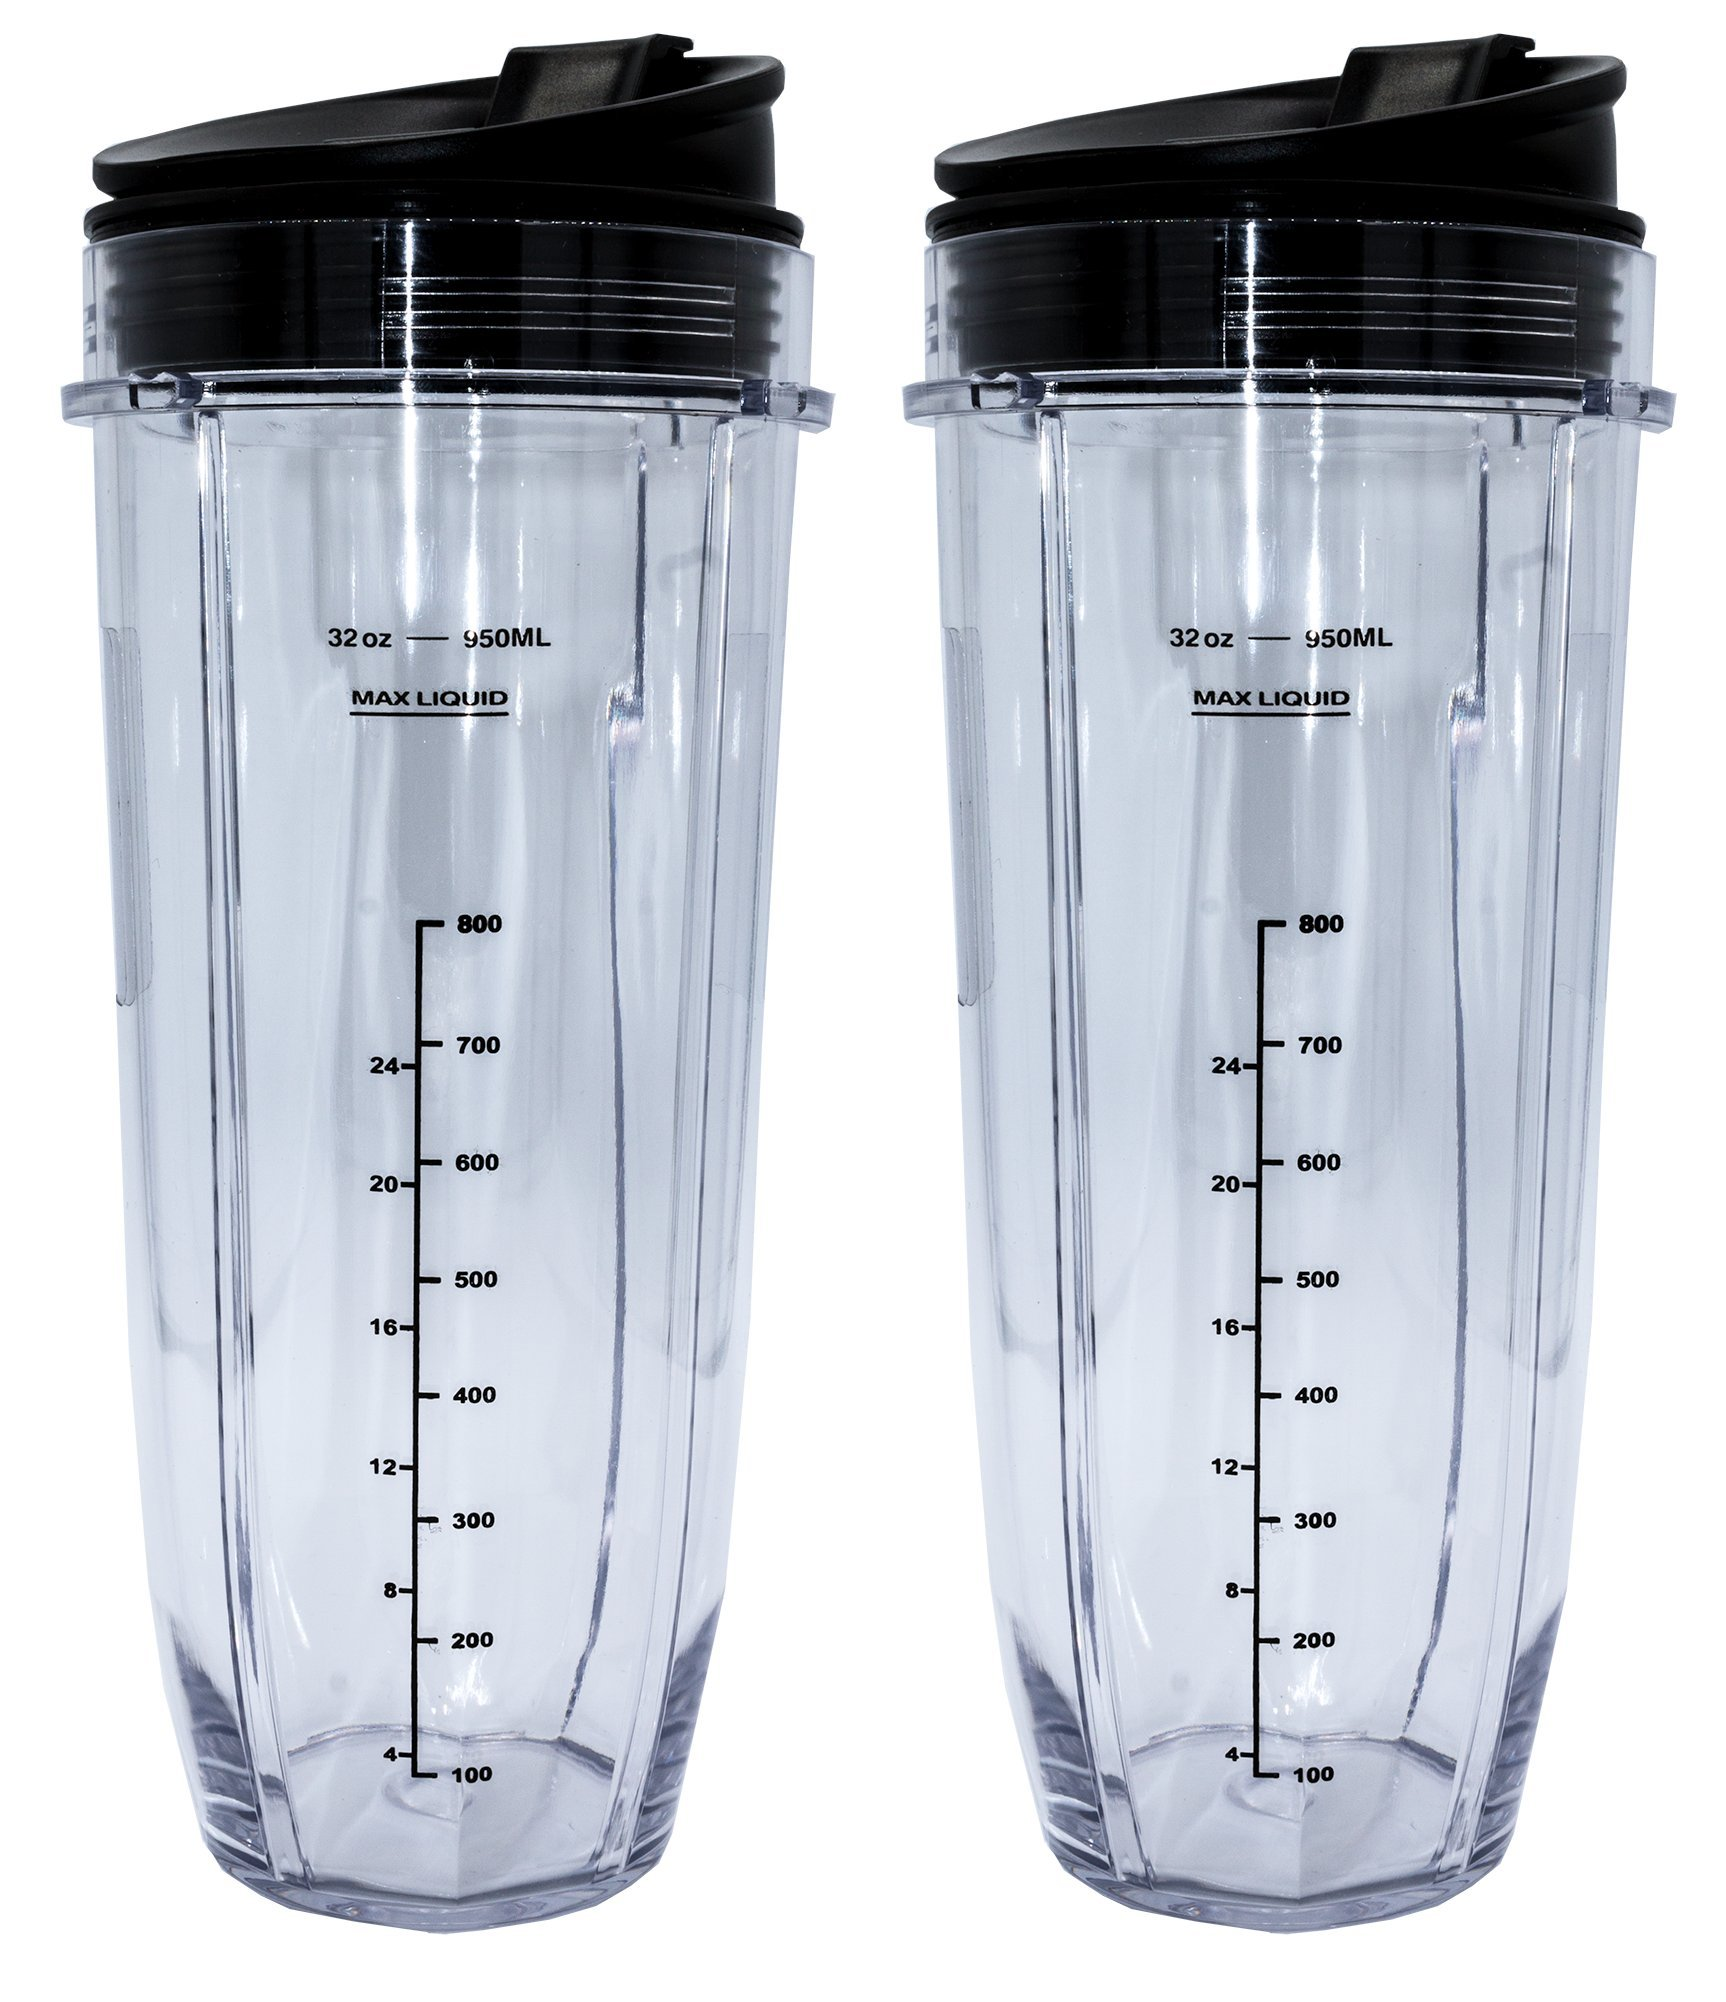 Blendin 2 Pack 32 Ounce Cup with Sip & Seal Lids,Fits Nutri Ninja Auto-iQ 1000W and Duo Blenders by BLENDIN (Image #1)